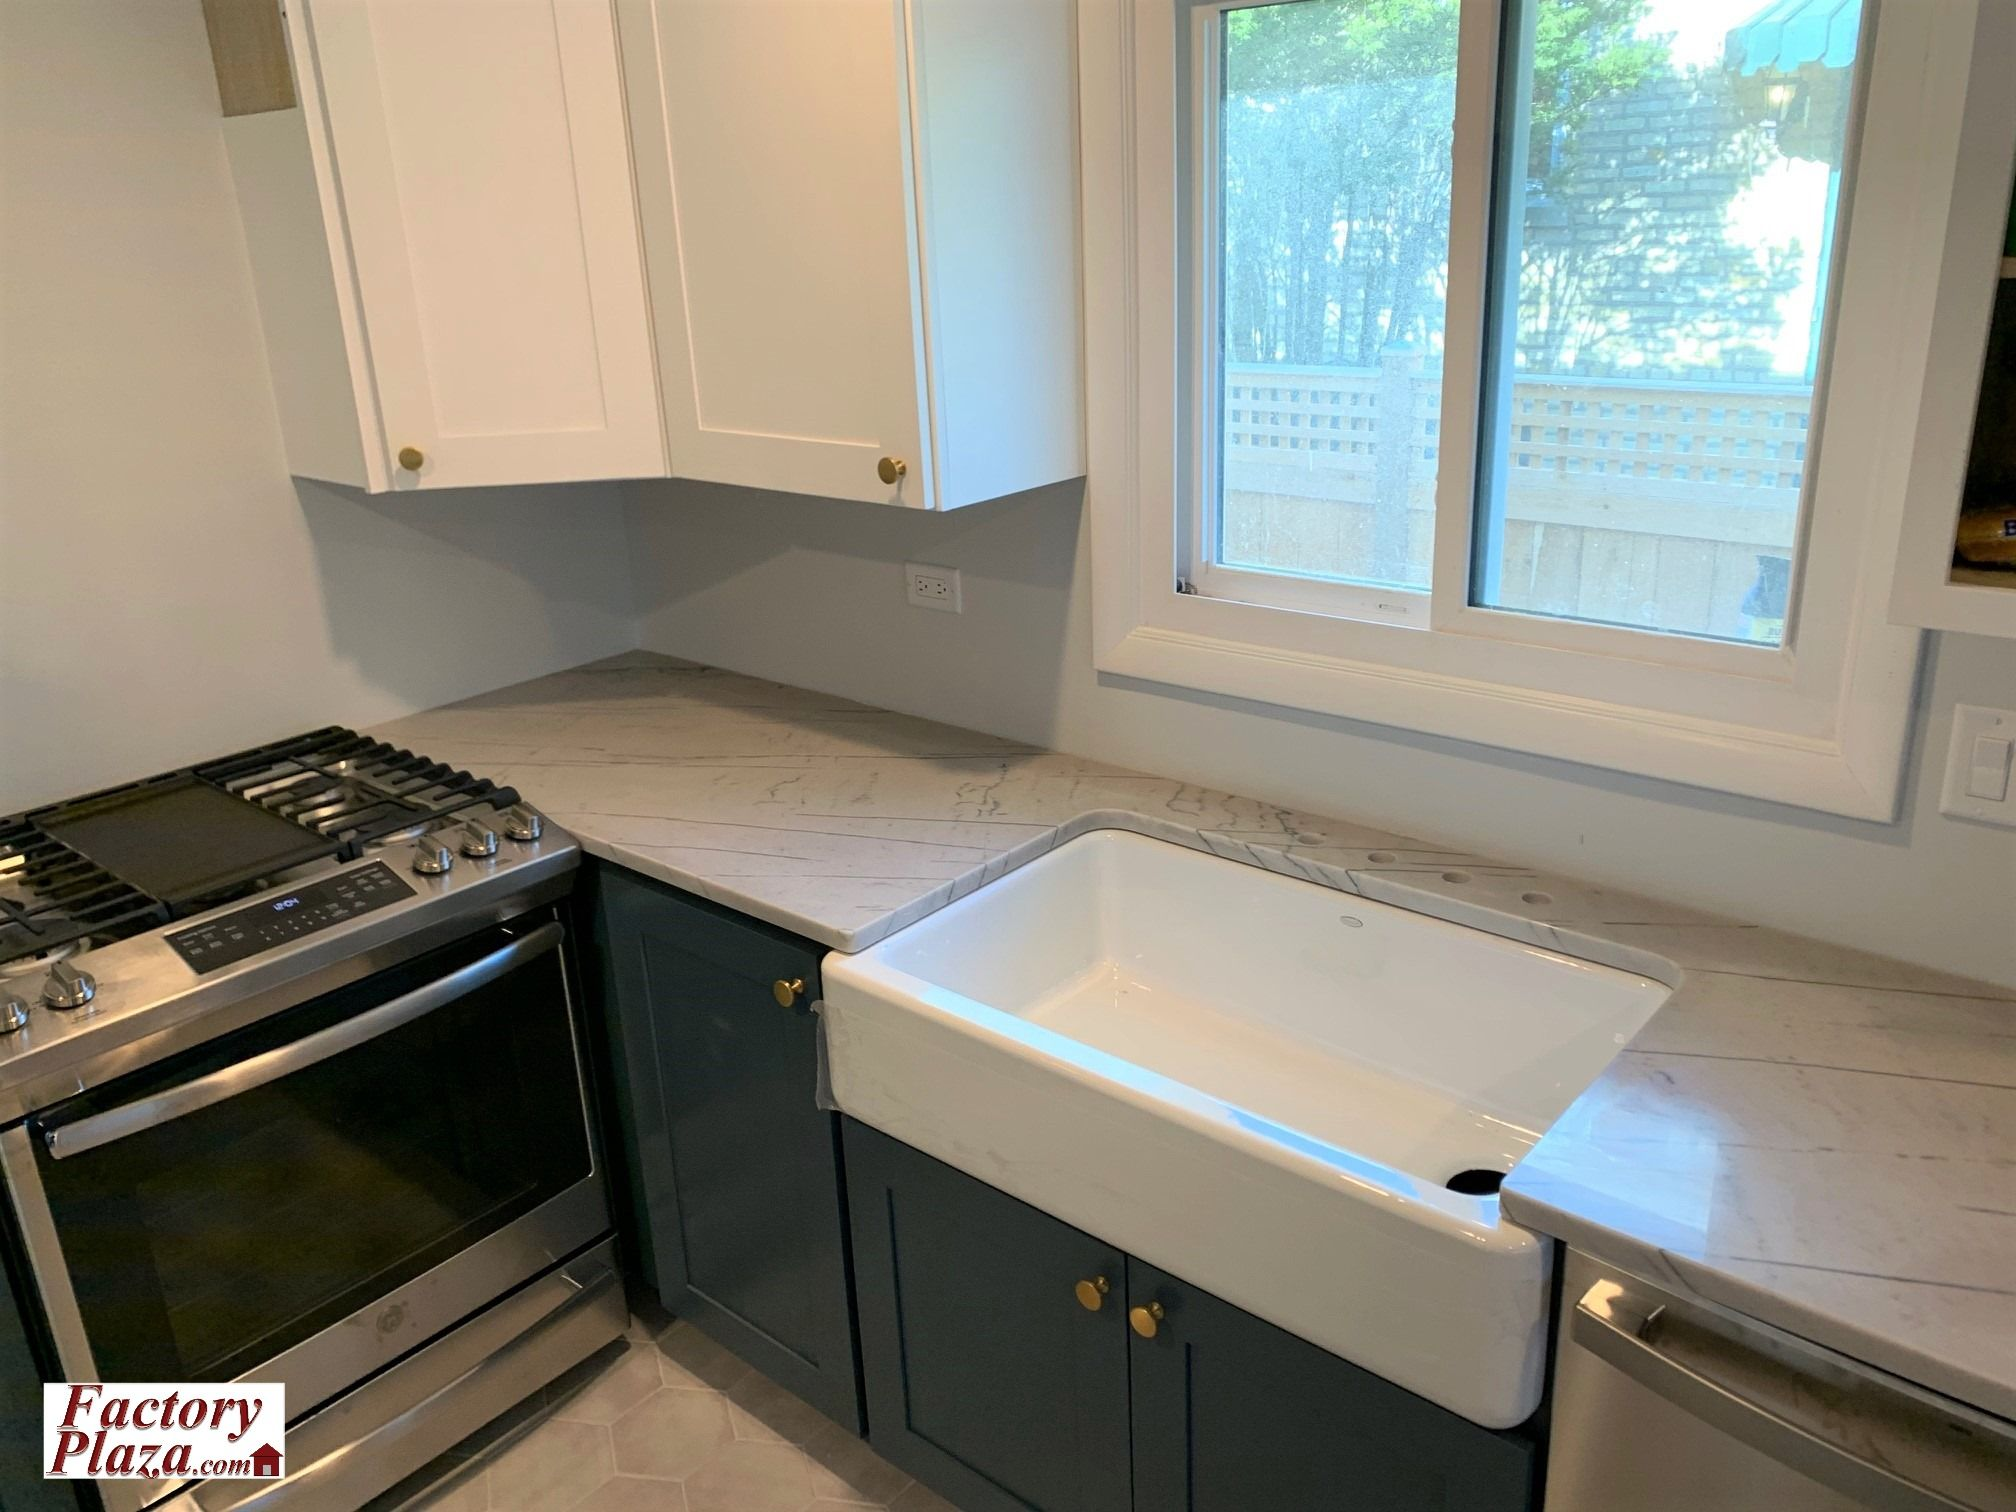 Is Quartzite Good For Kitchen Countertops Quartzite Is One Of The Best Materials For Countertops In 2020 Quartzite Countertops Countertops Quartz Countertops